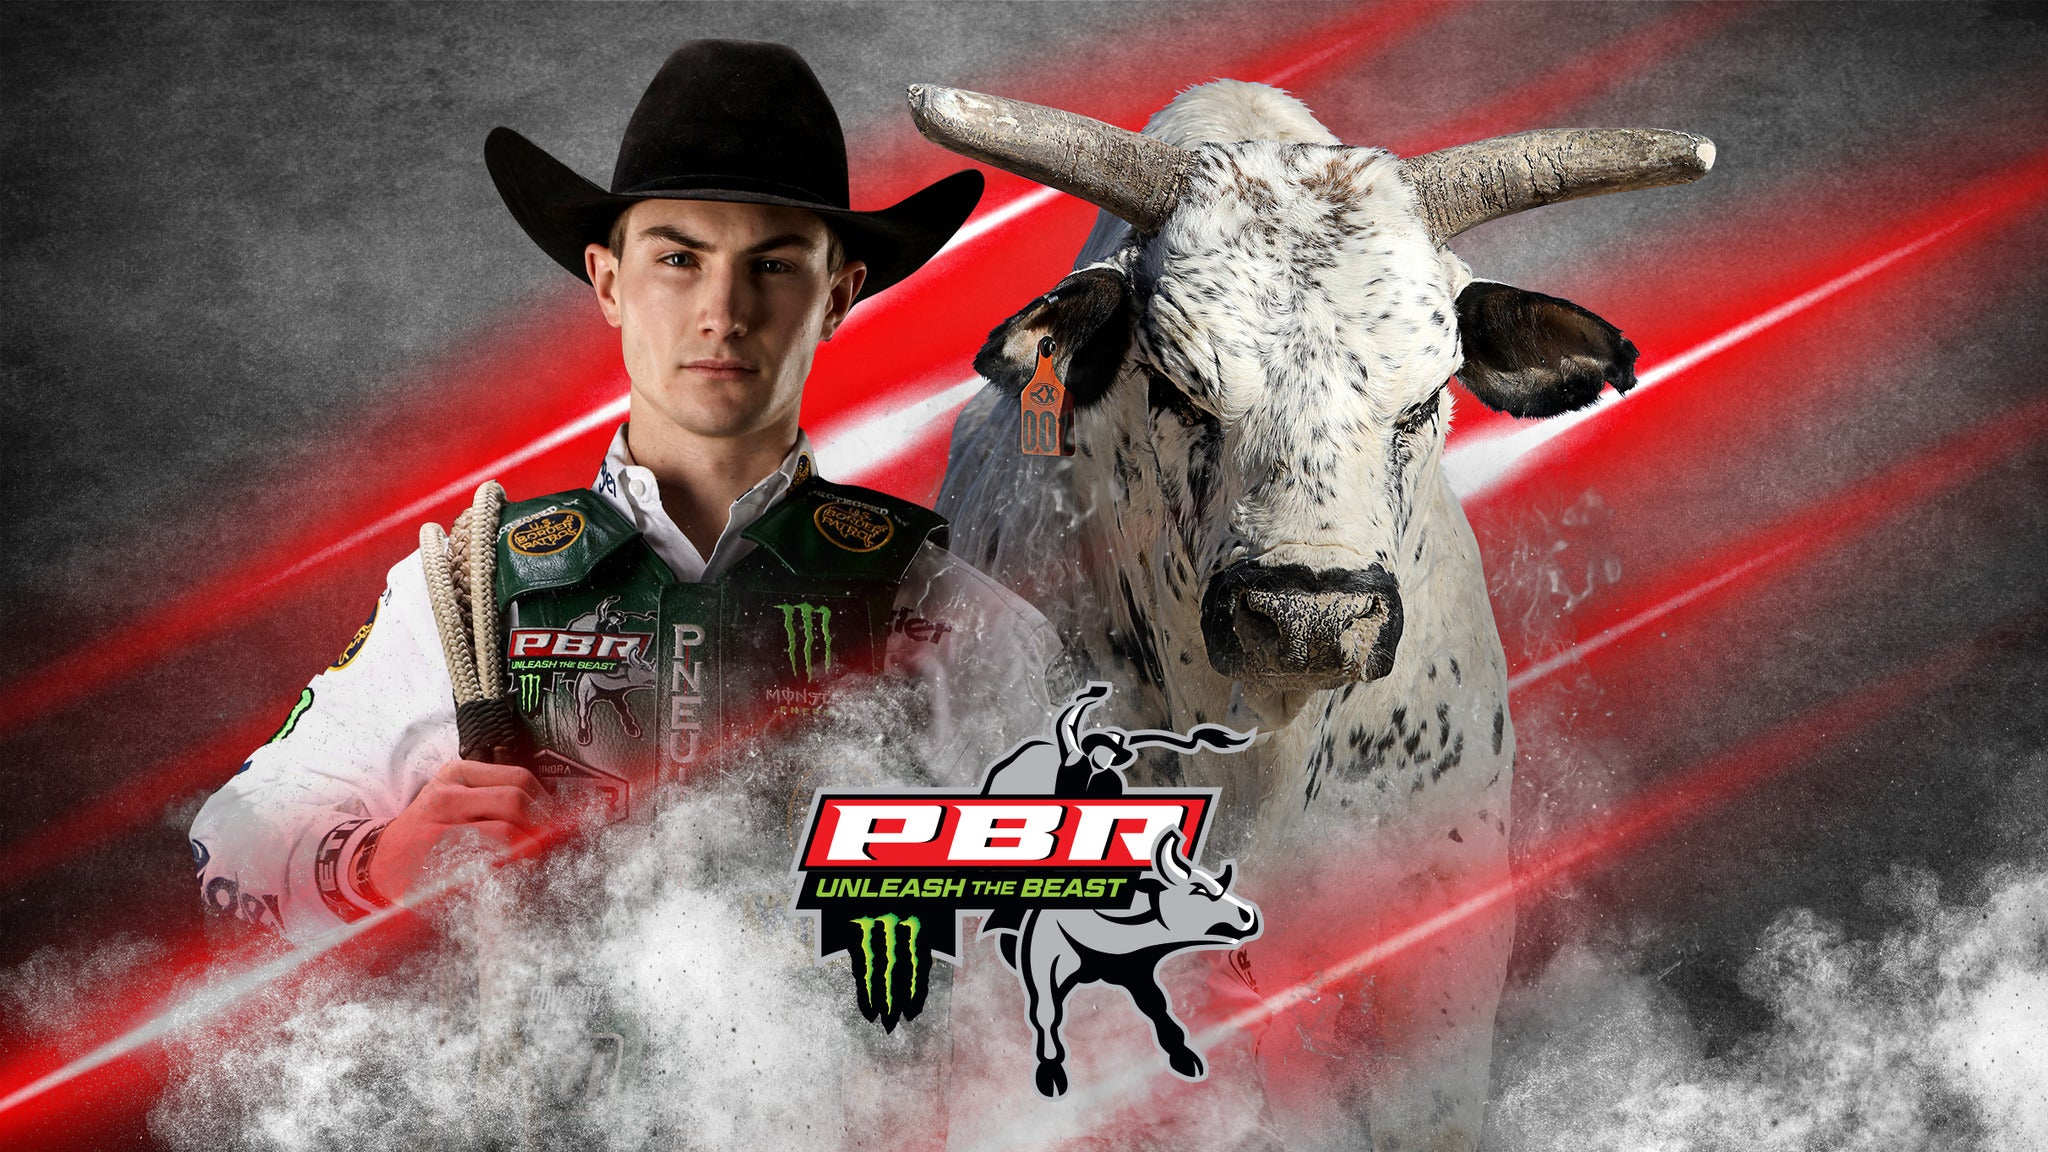 PBR: Unleash the Beast presale code for early tickets in Lincoln